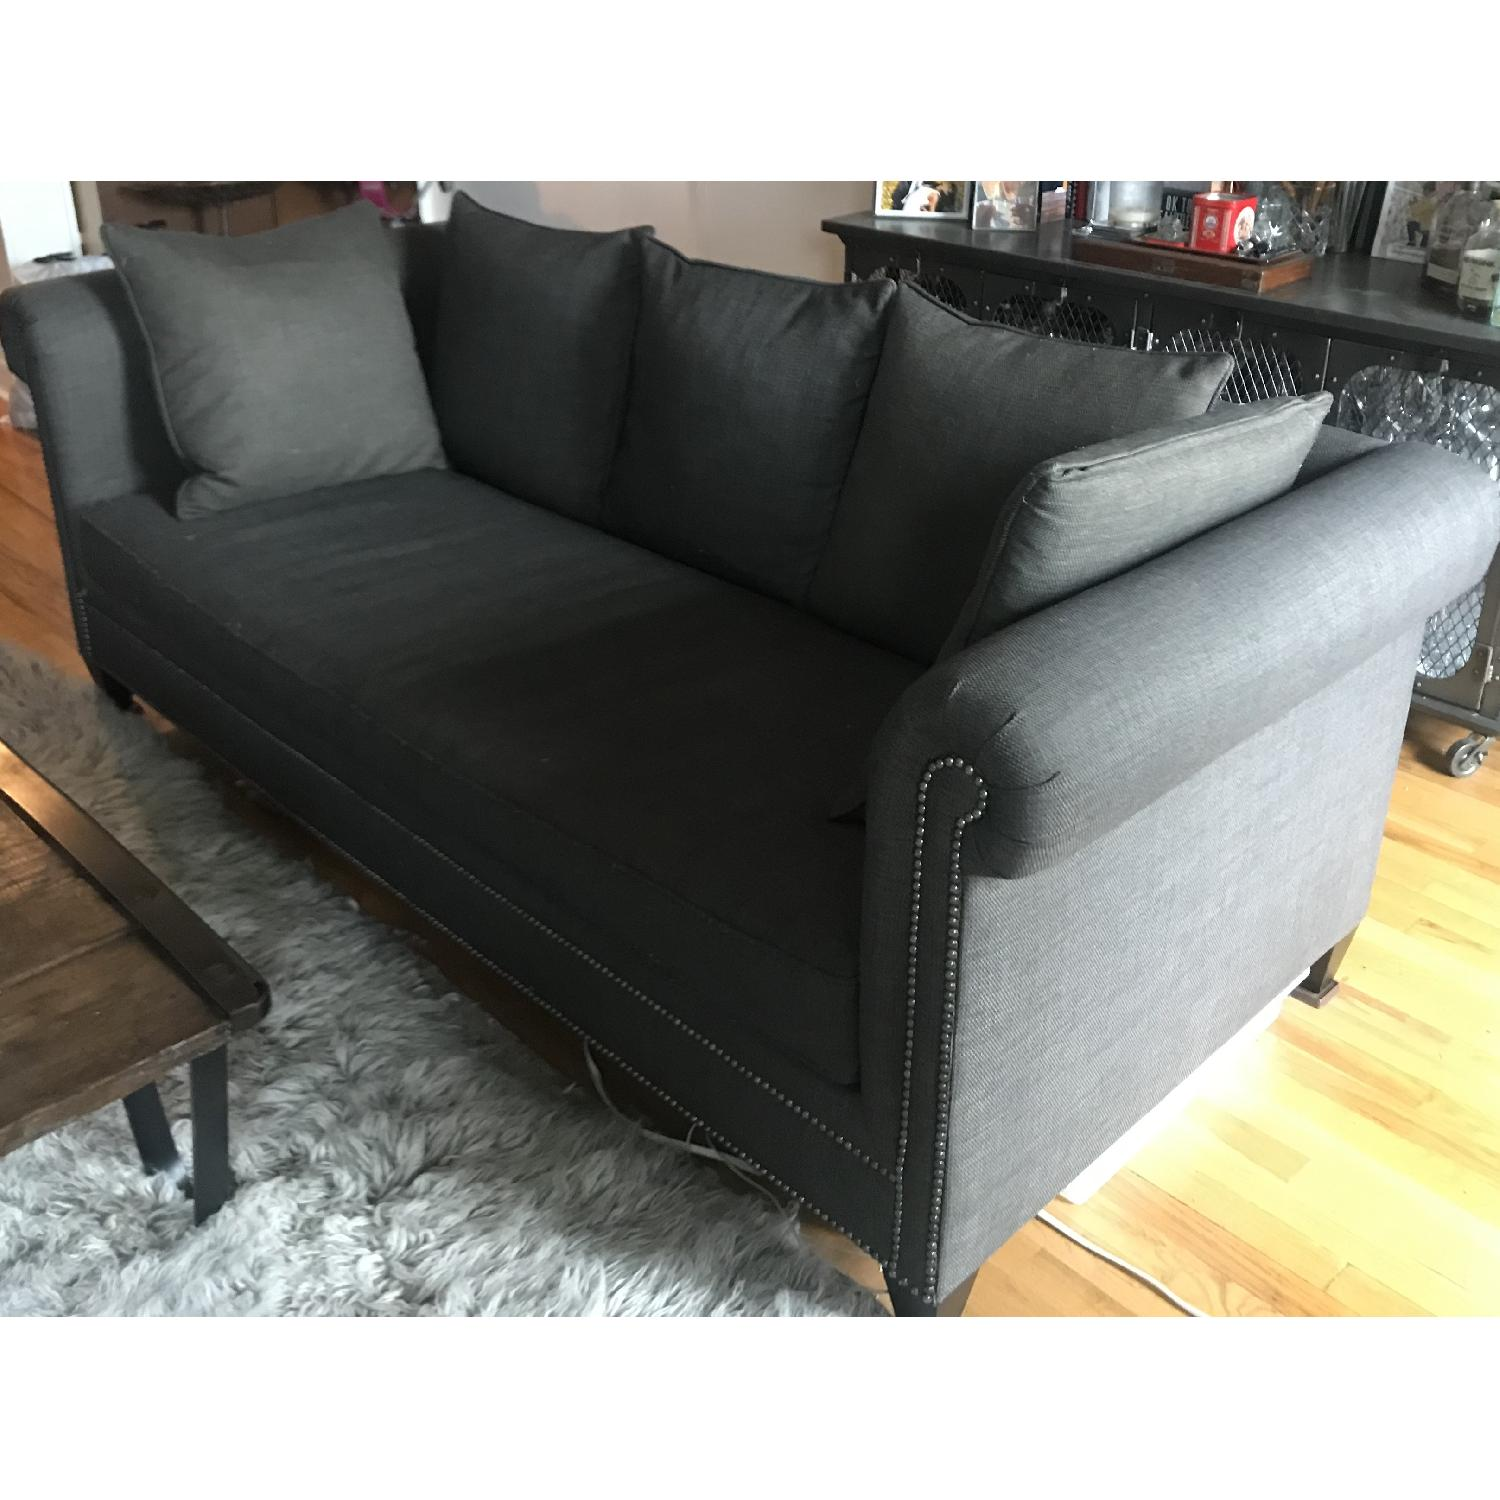 Crate & Barrel 3 Seater Down Filled Sofa - image-1